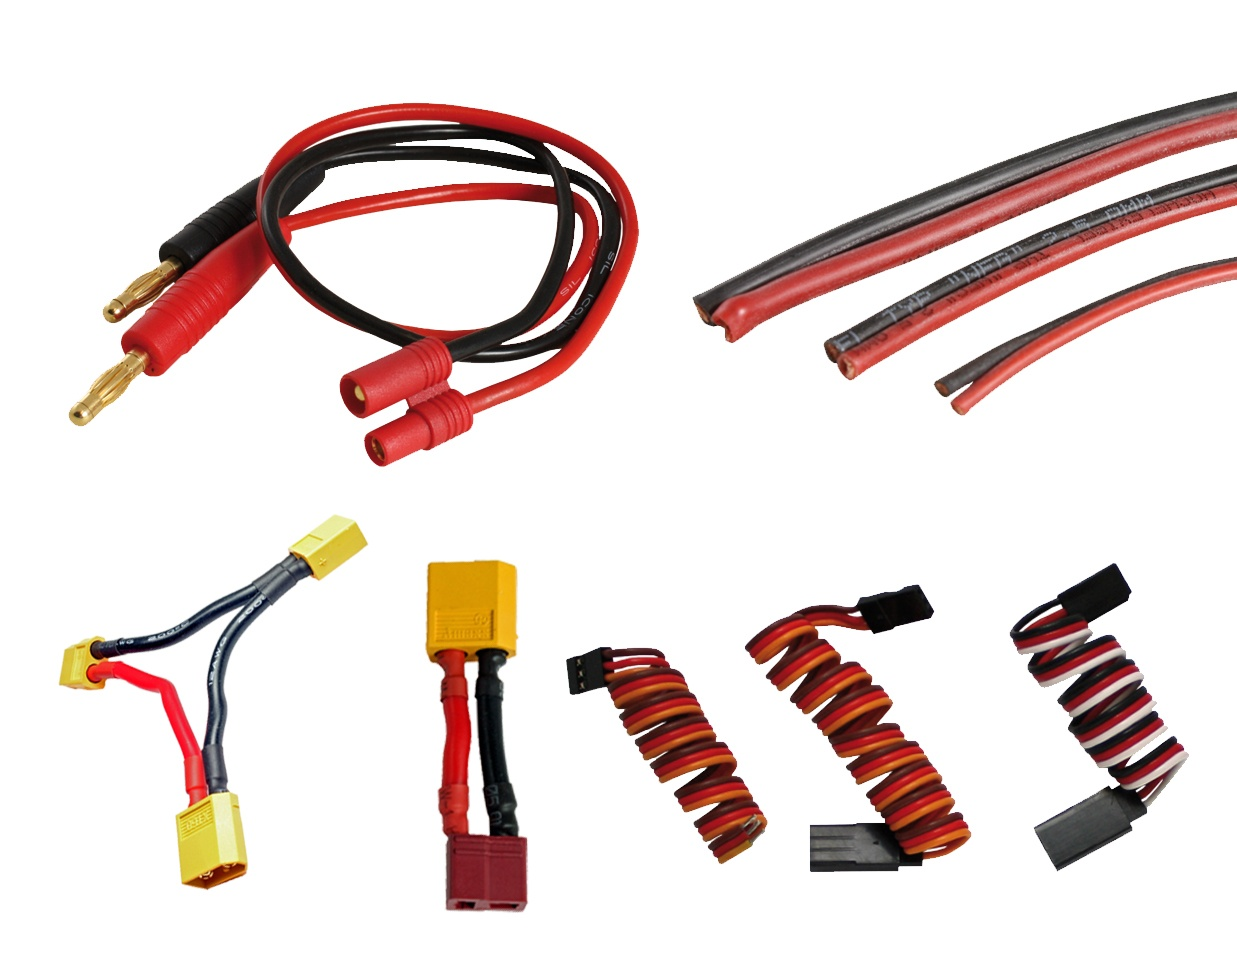 Cable & Heat Shrink Tubing